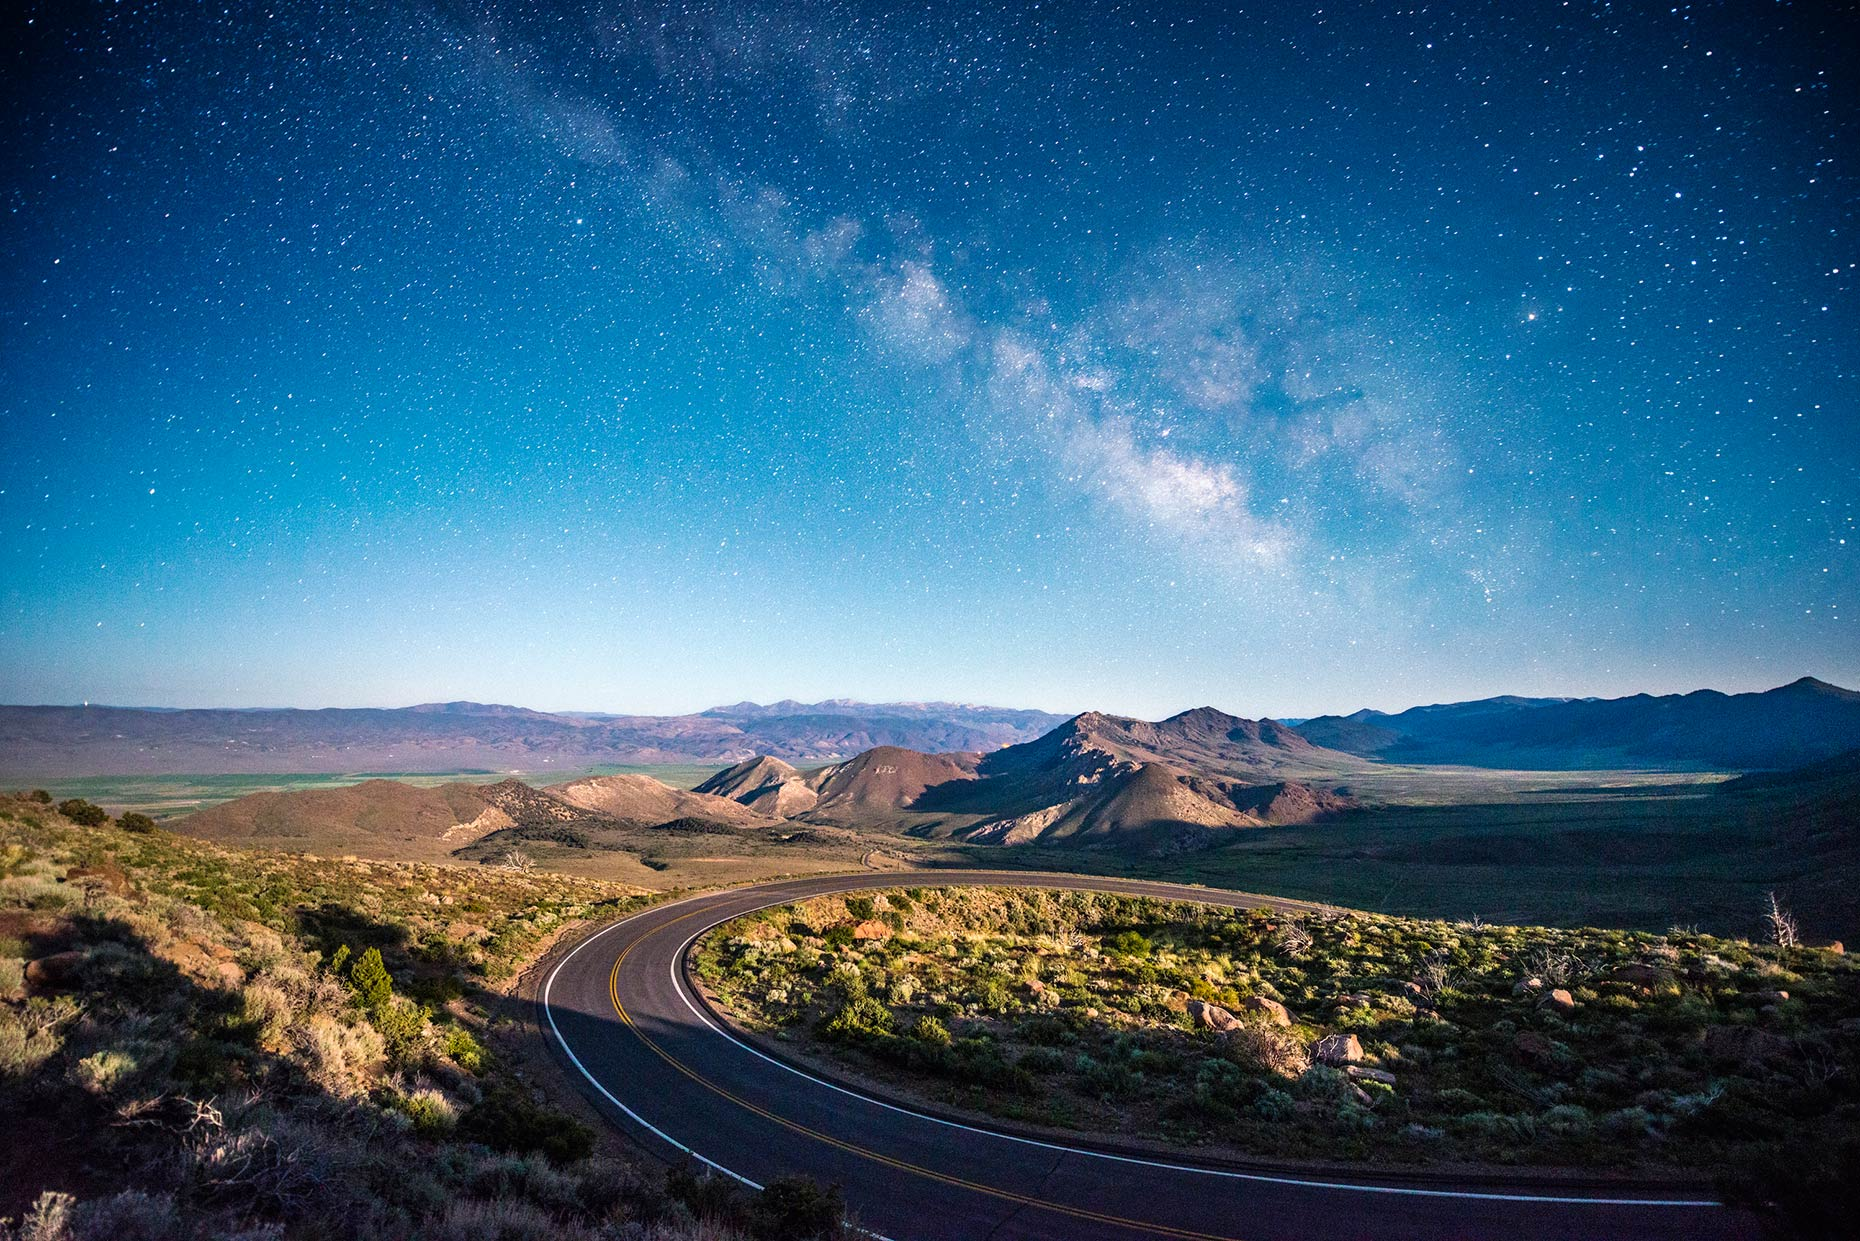 Winding Road At Night Under The Stars - Monitor Pass, California